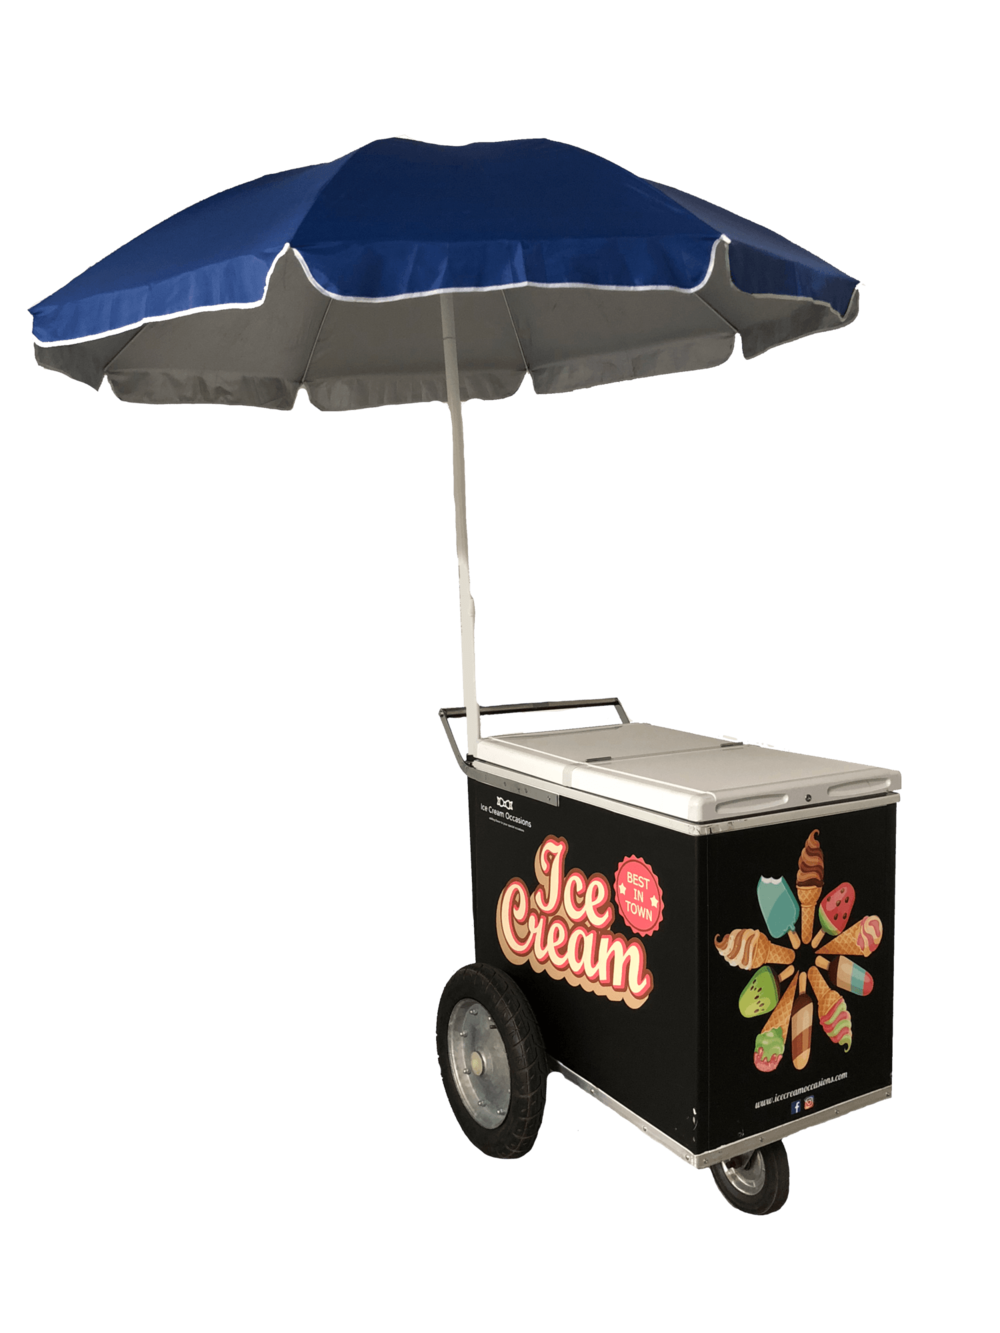 ICE CREAM CART RENTAL - Rent our unique ice cream cart. It's a classic and a favorite among our customers. Also comes in white! Cart rental is $349. Includes Delivery, Pickup, and 70 FREE pieces of your choice of ice cream (Mochi Ice Cream Extra). Umbrella included at no additional charge. Need more than 70 pieces? Sure, just request it. Choose from the LARGEST selection of ice cream in the industry!